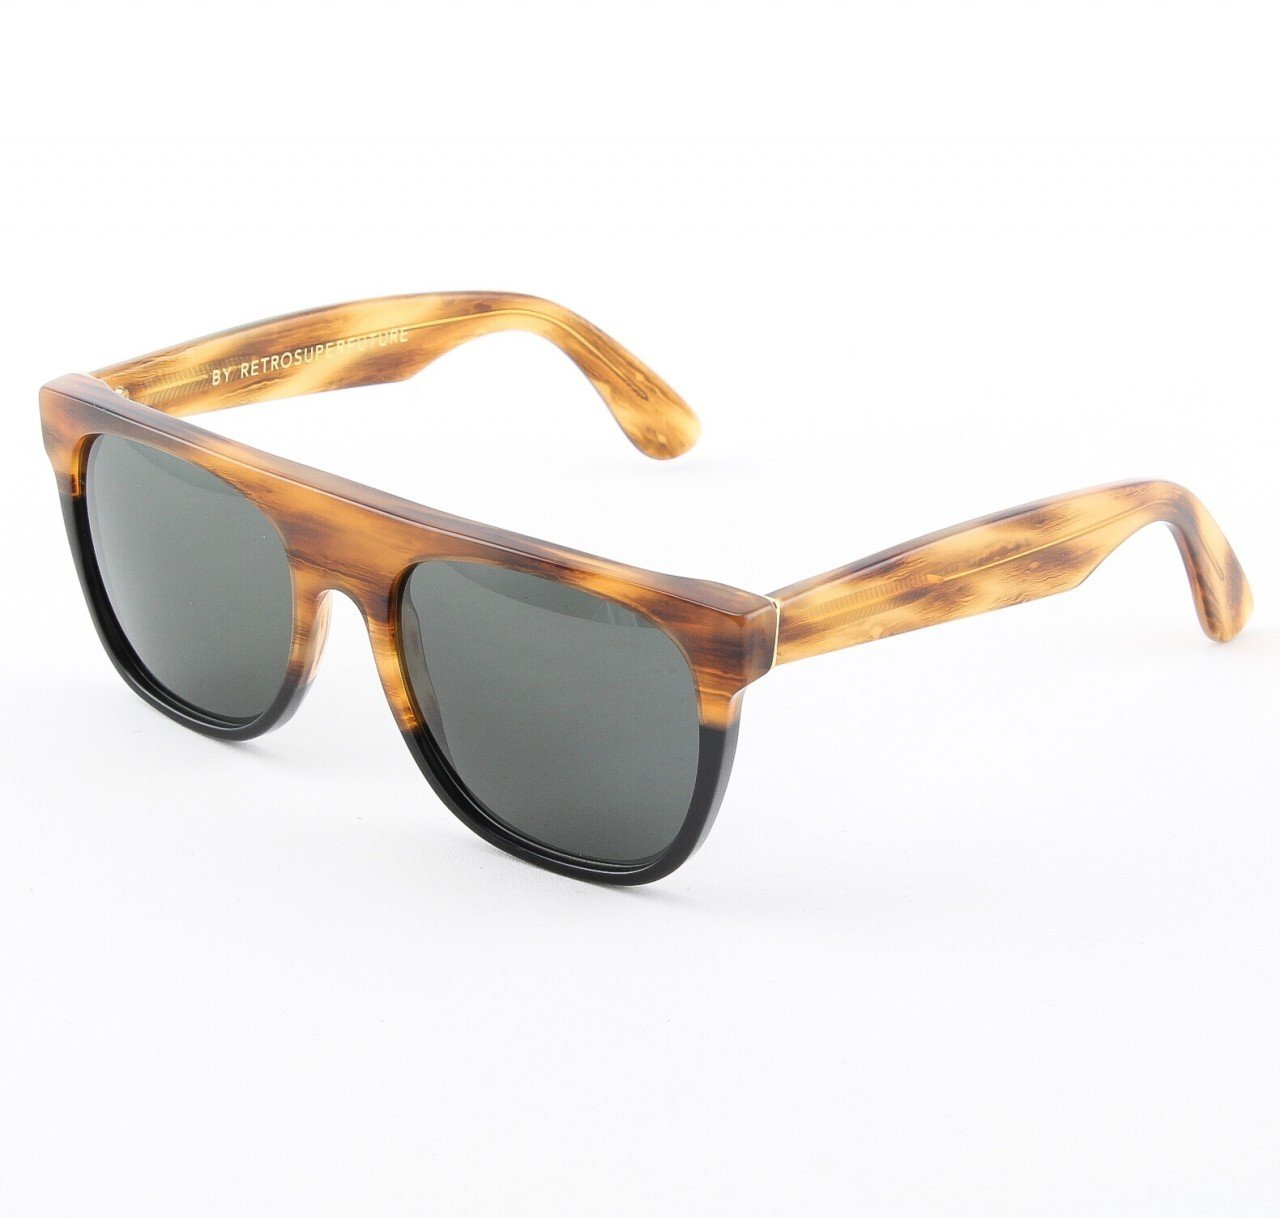 Super Flat Top 801/3T Sunglasses Color Brown Havana and Black by RETROSUPERFUTURE